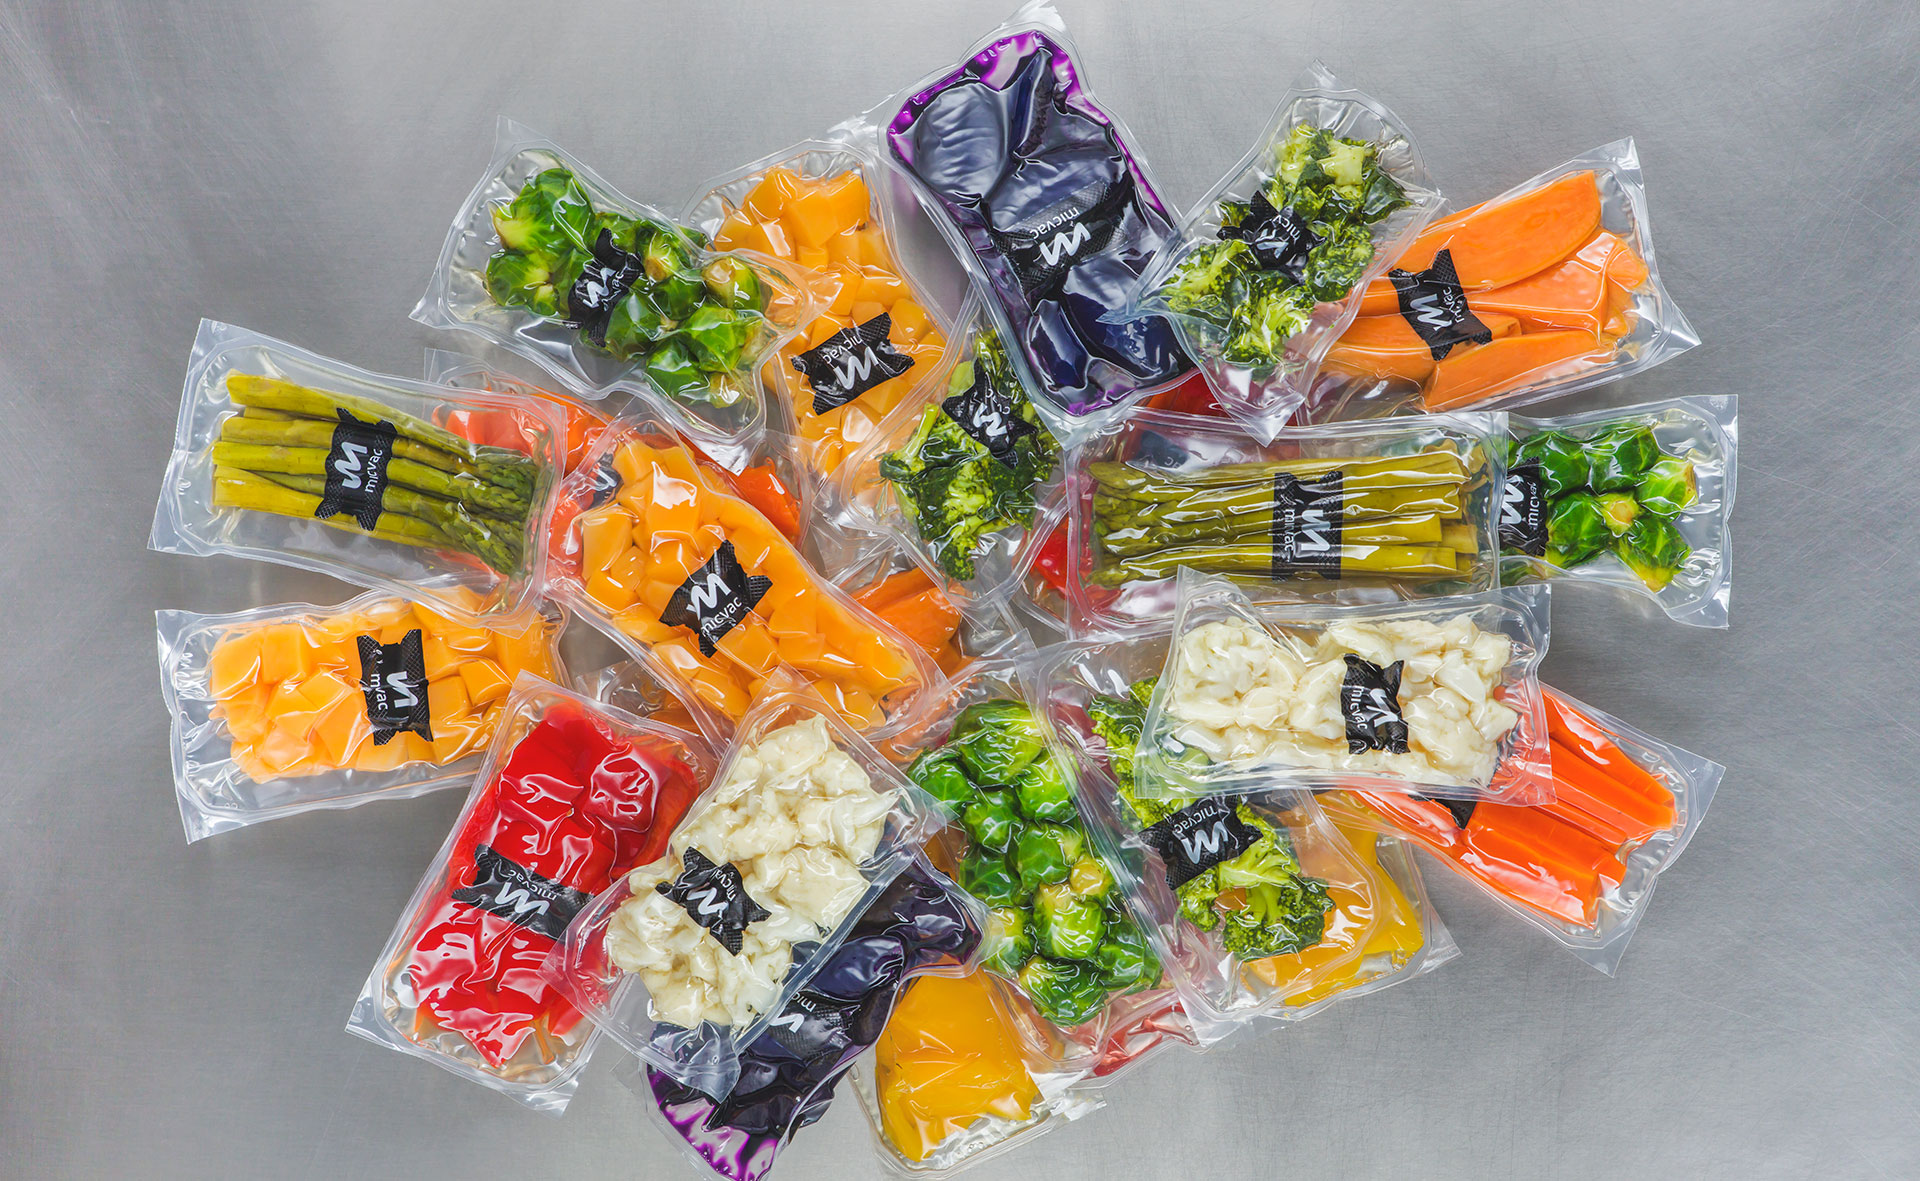 The Micvac method is also suitable for thermoformed food packages and pouches